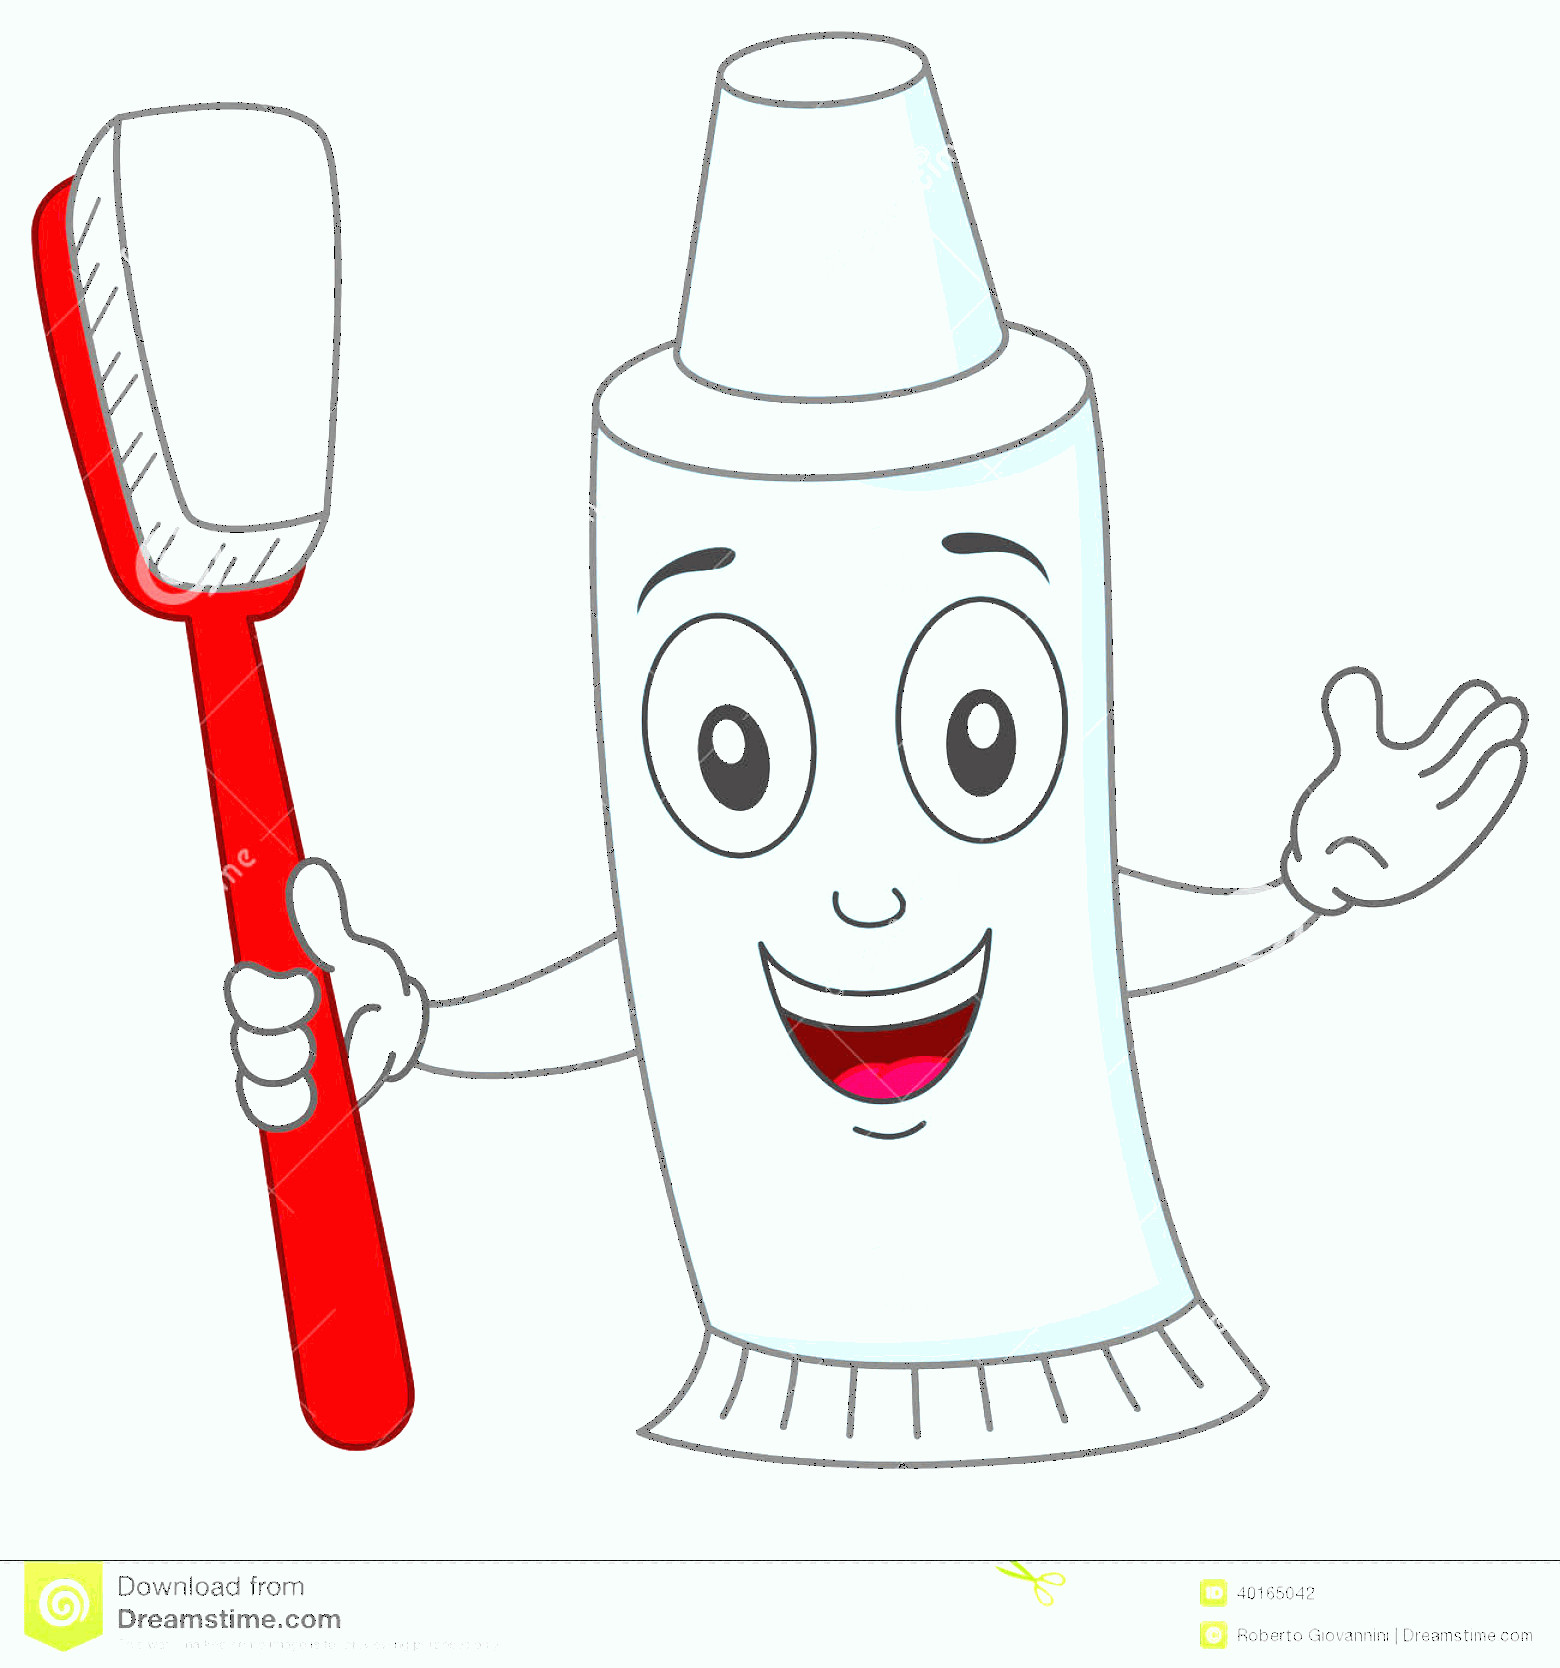 Toothpaste Cartoon Vector: Cute Toothbrush And Toothpaste Clipart